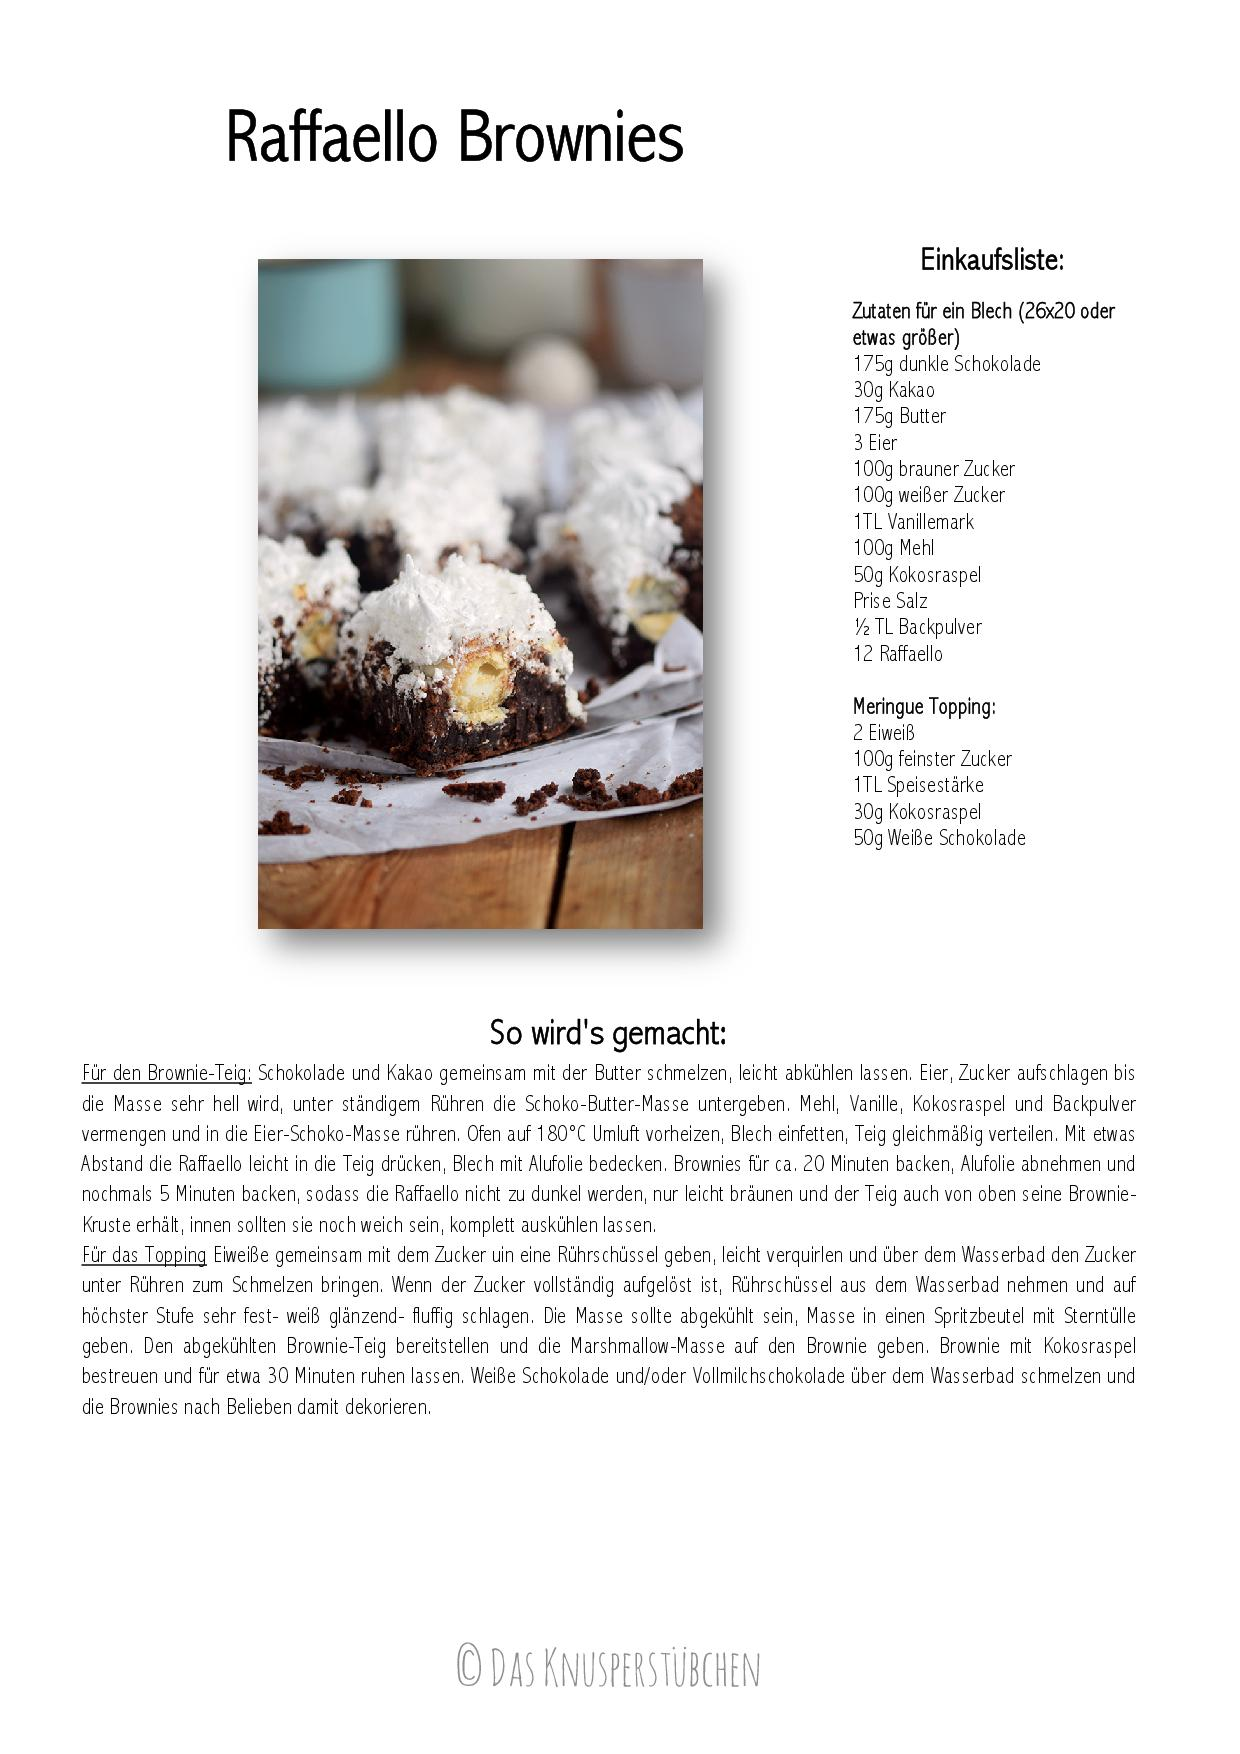 Raffaello Brownies-001